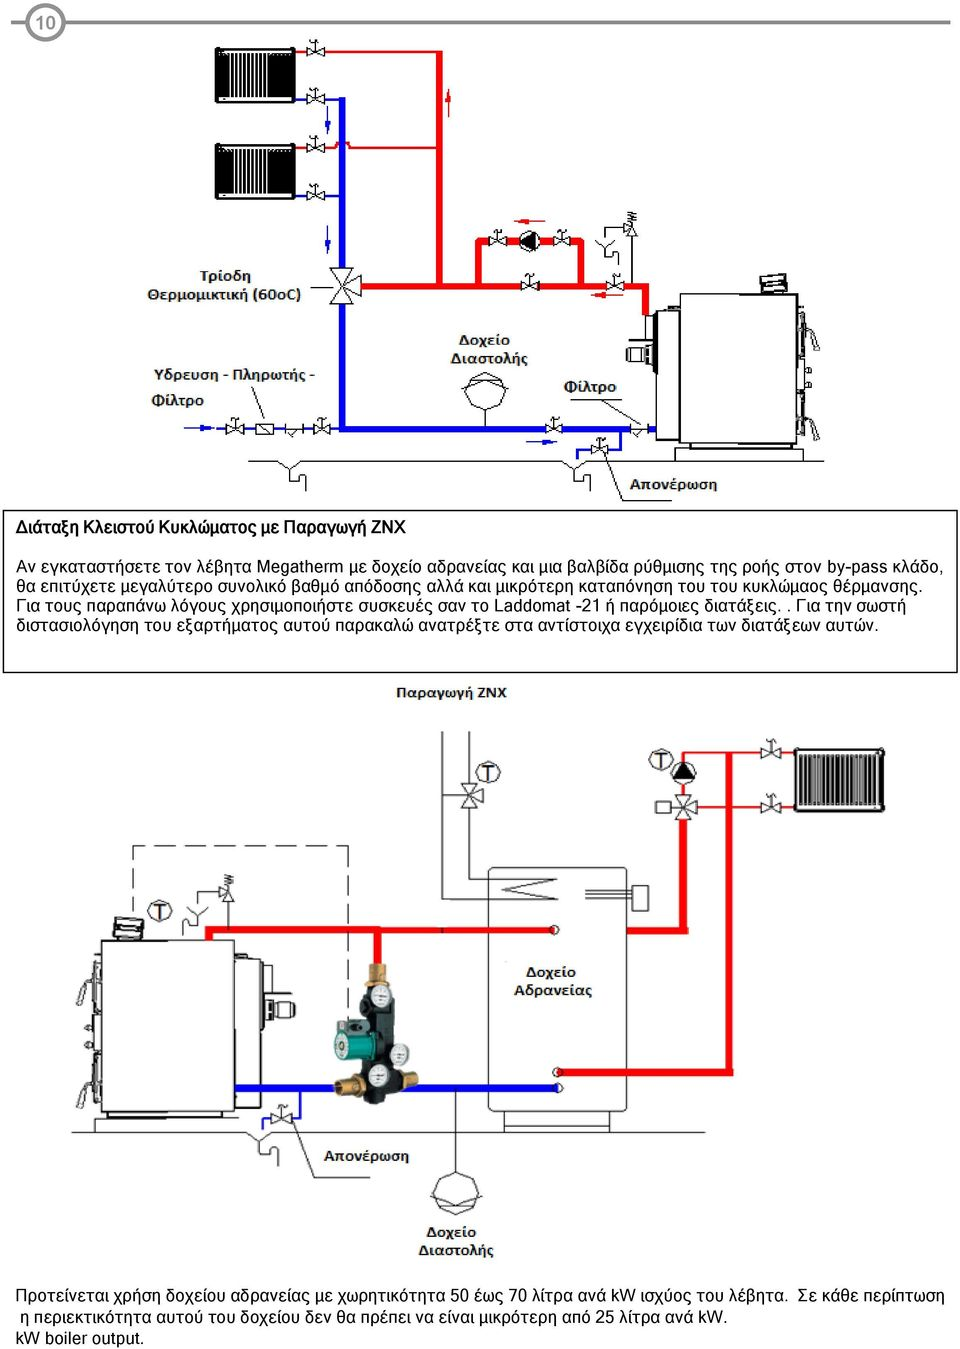 w supply If you install your boiler together with an accumulation tank with a help regulation device with integrated by-pass flow control, Αν εγκαταστήσετε you will have τον higher λέβητα field